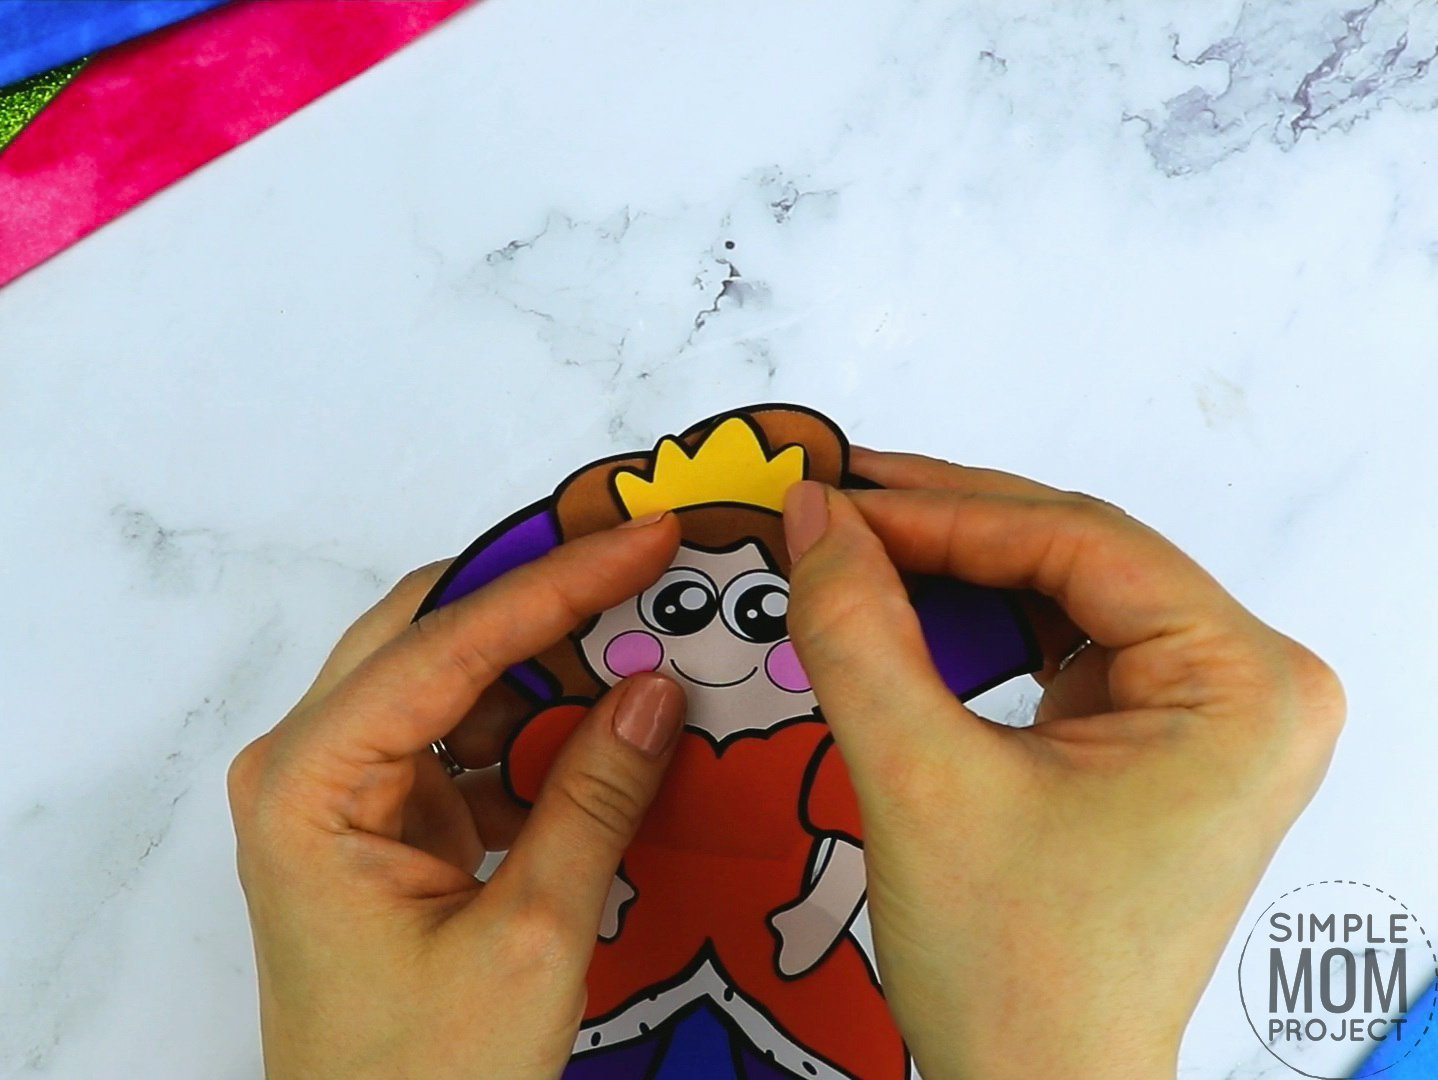 Free printable royal queen page template for kids, preschoolers and kindergartners